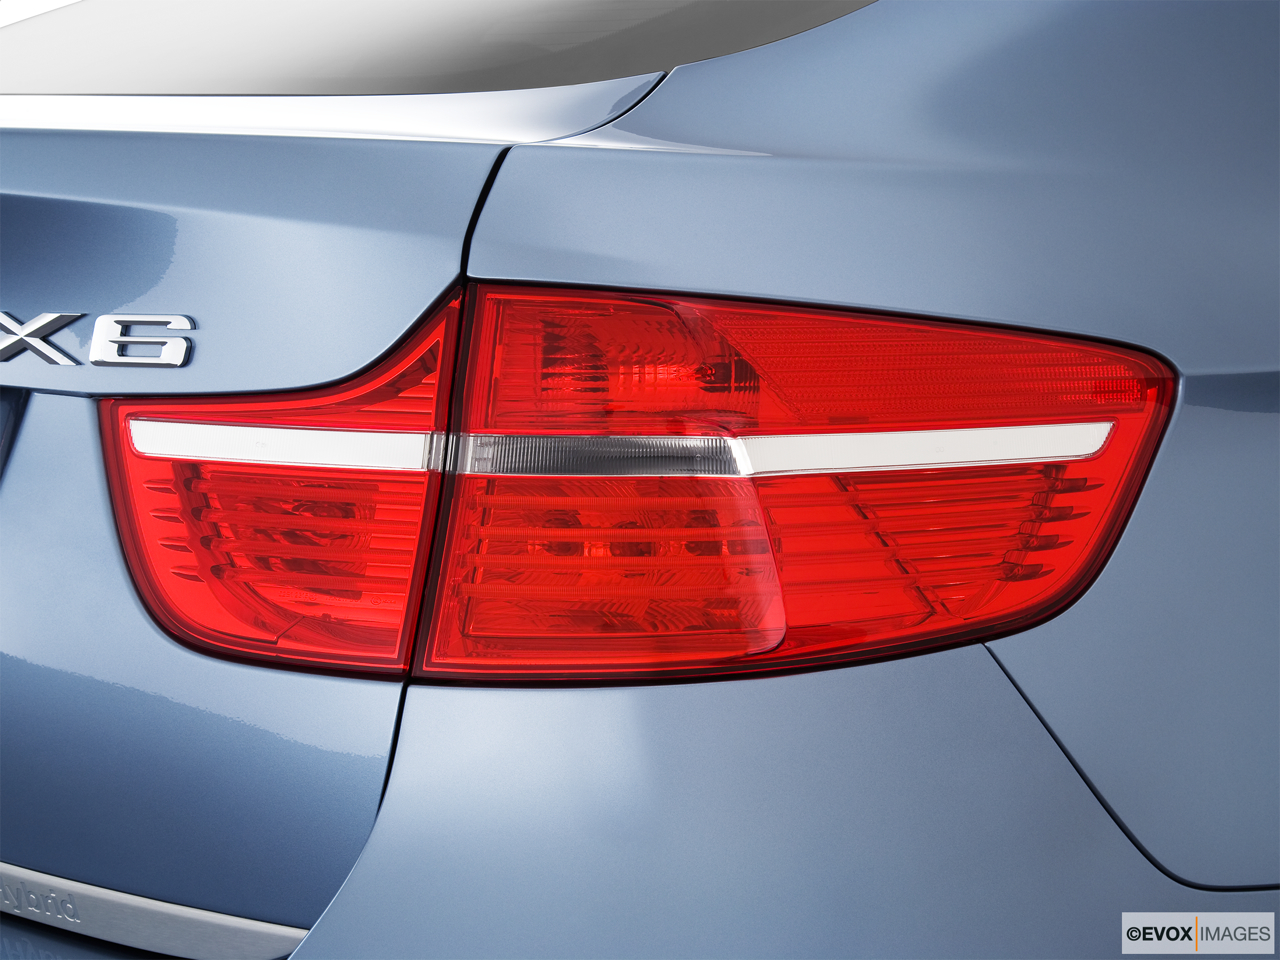 2010 BMW X6 Hybrid Base Passenger Side Taillight.